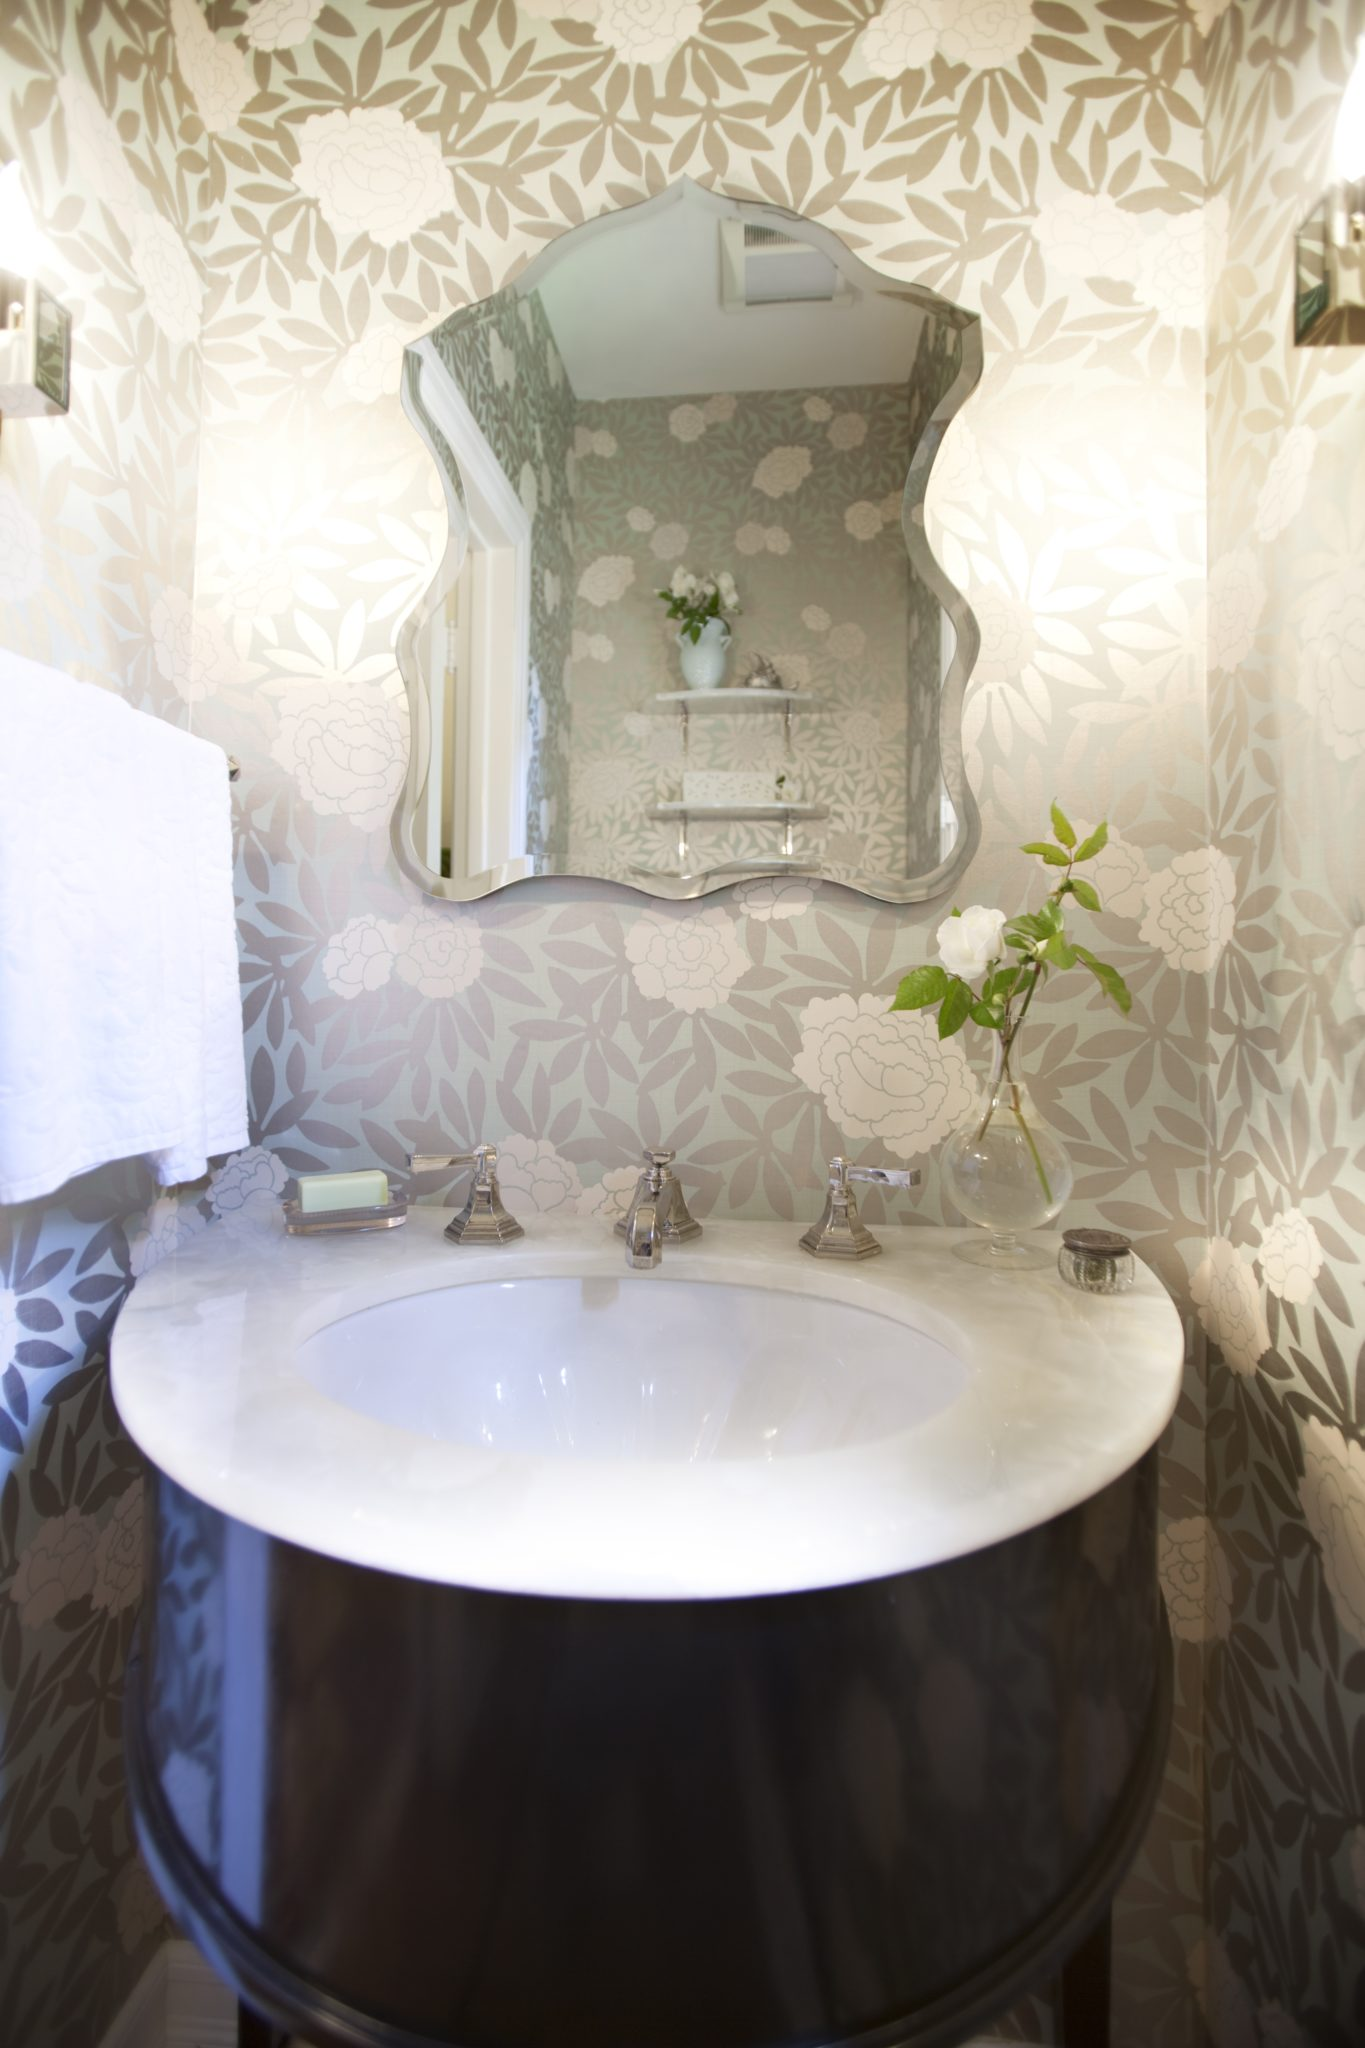 A locally made bespoke vanity, marble countertop and rose patterned wallpaper. by Sarah Barnard Design